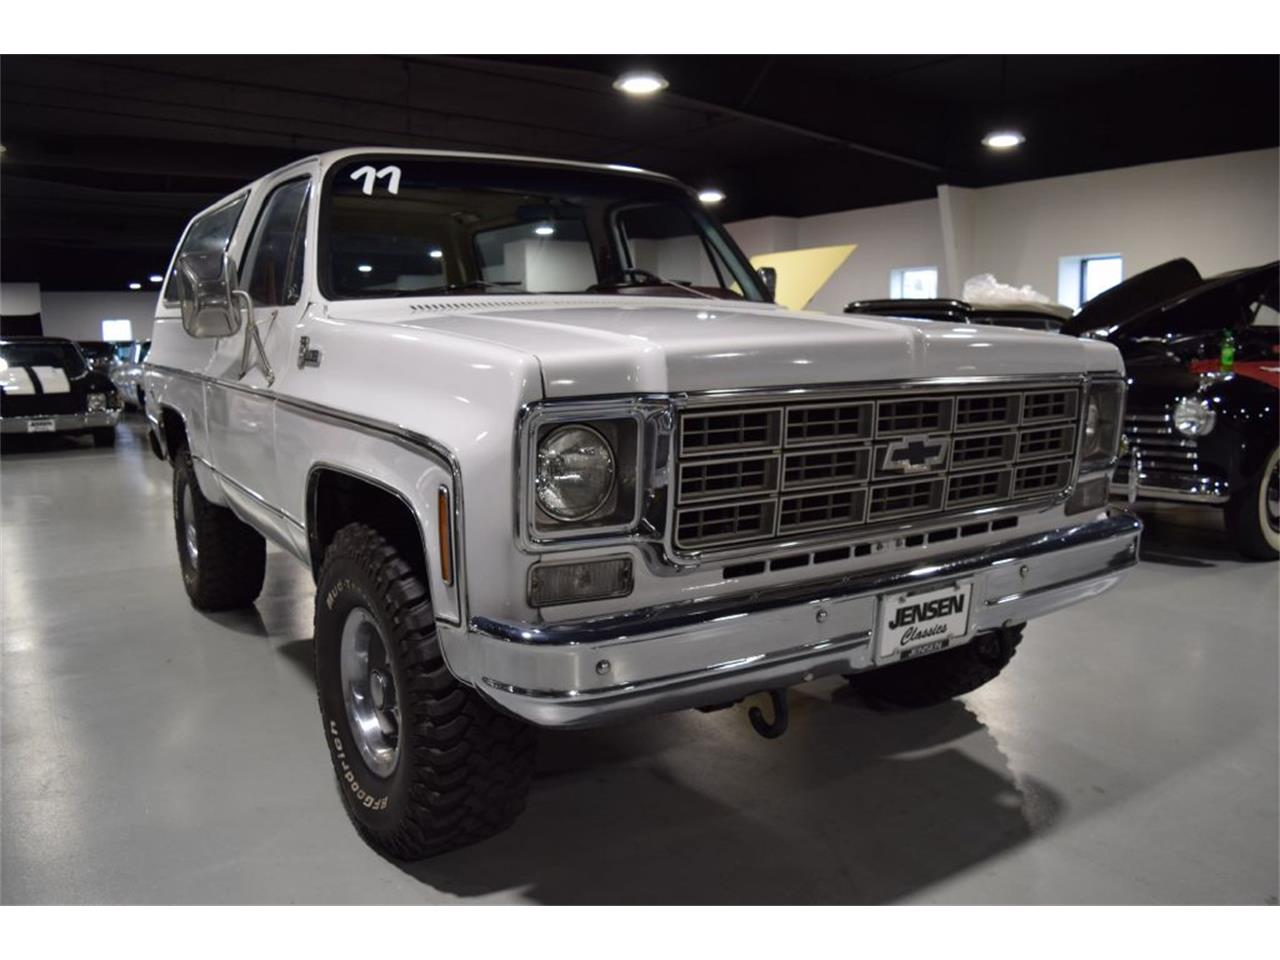 1977 Chevrolet Blazer (CC-1272279) for sale in Sioux City, Iowa